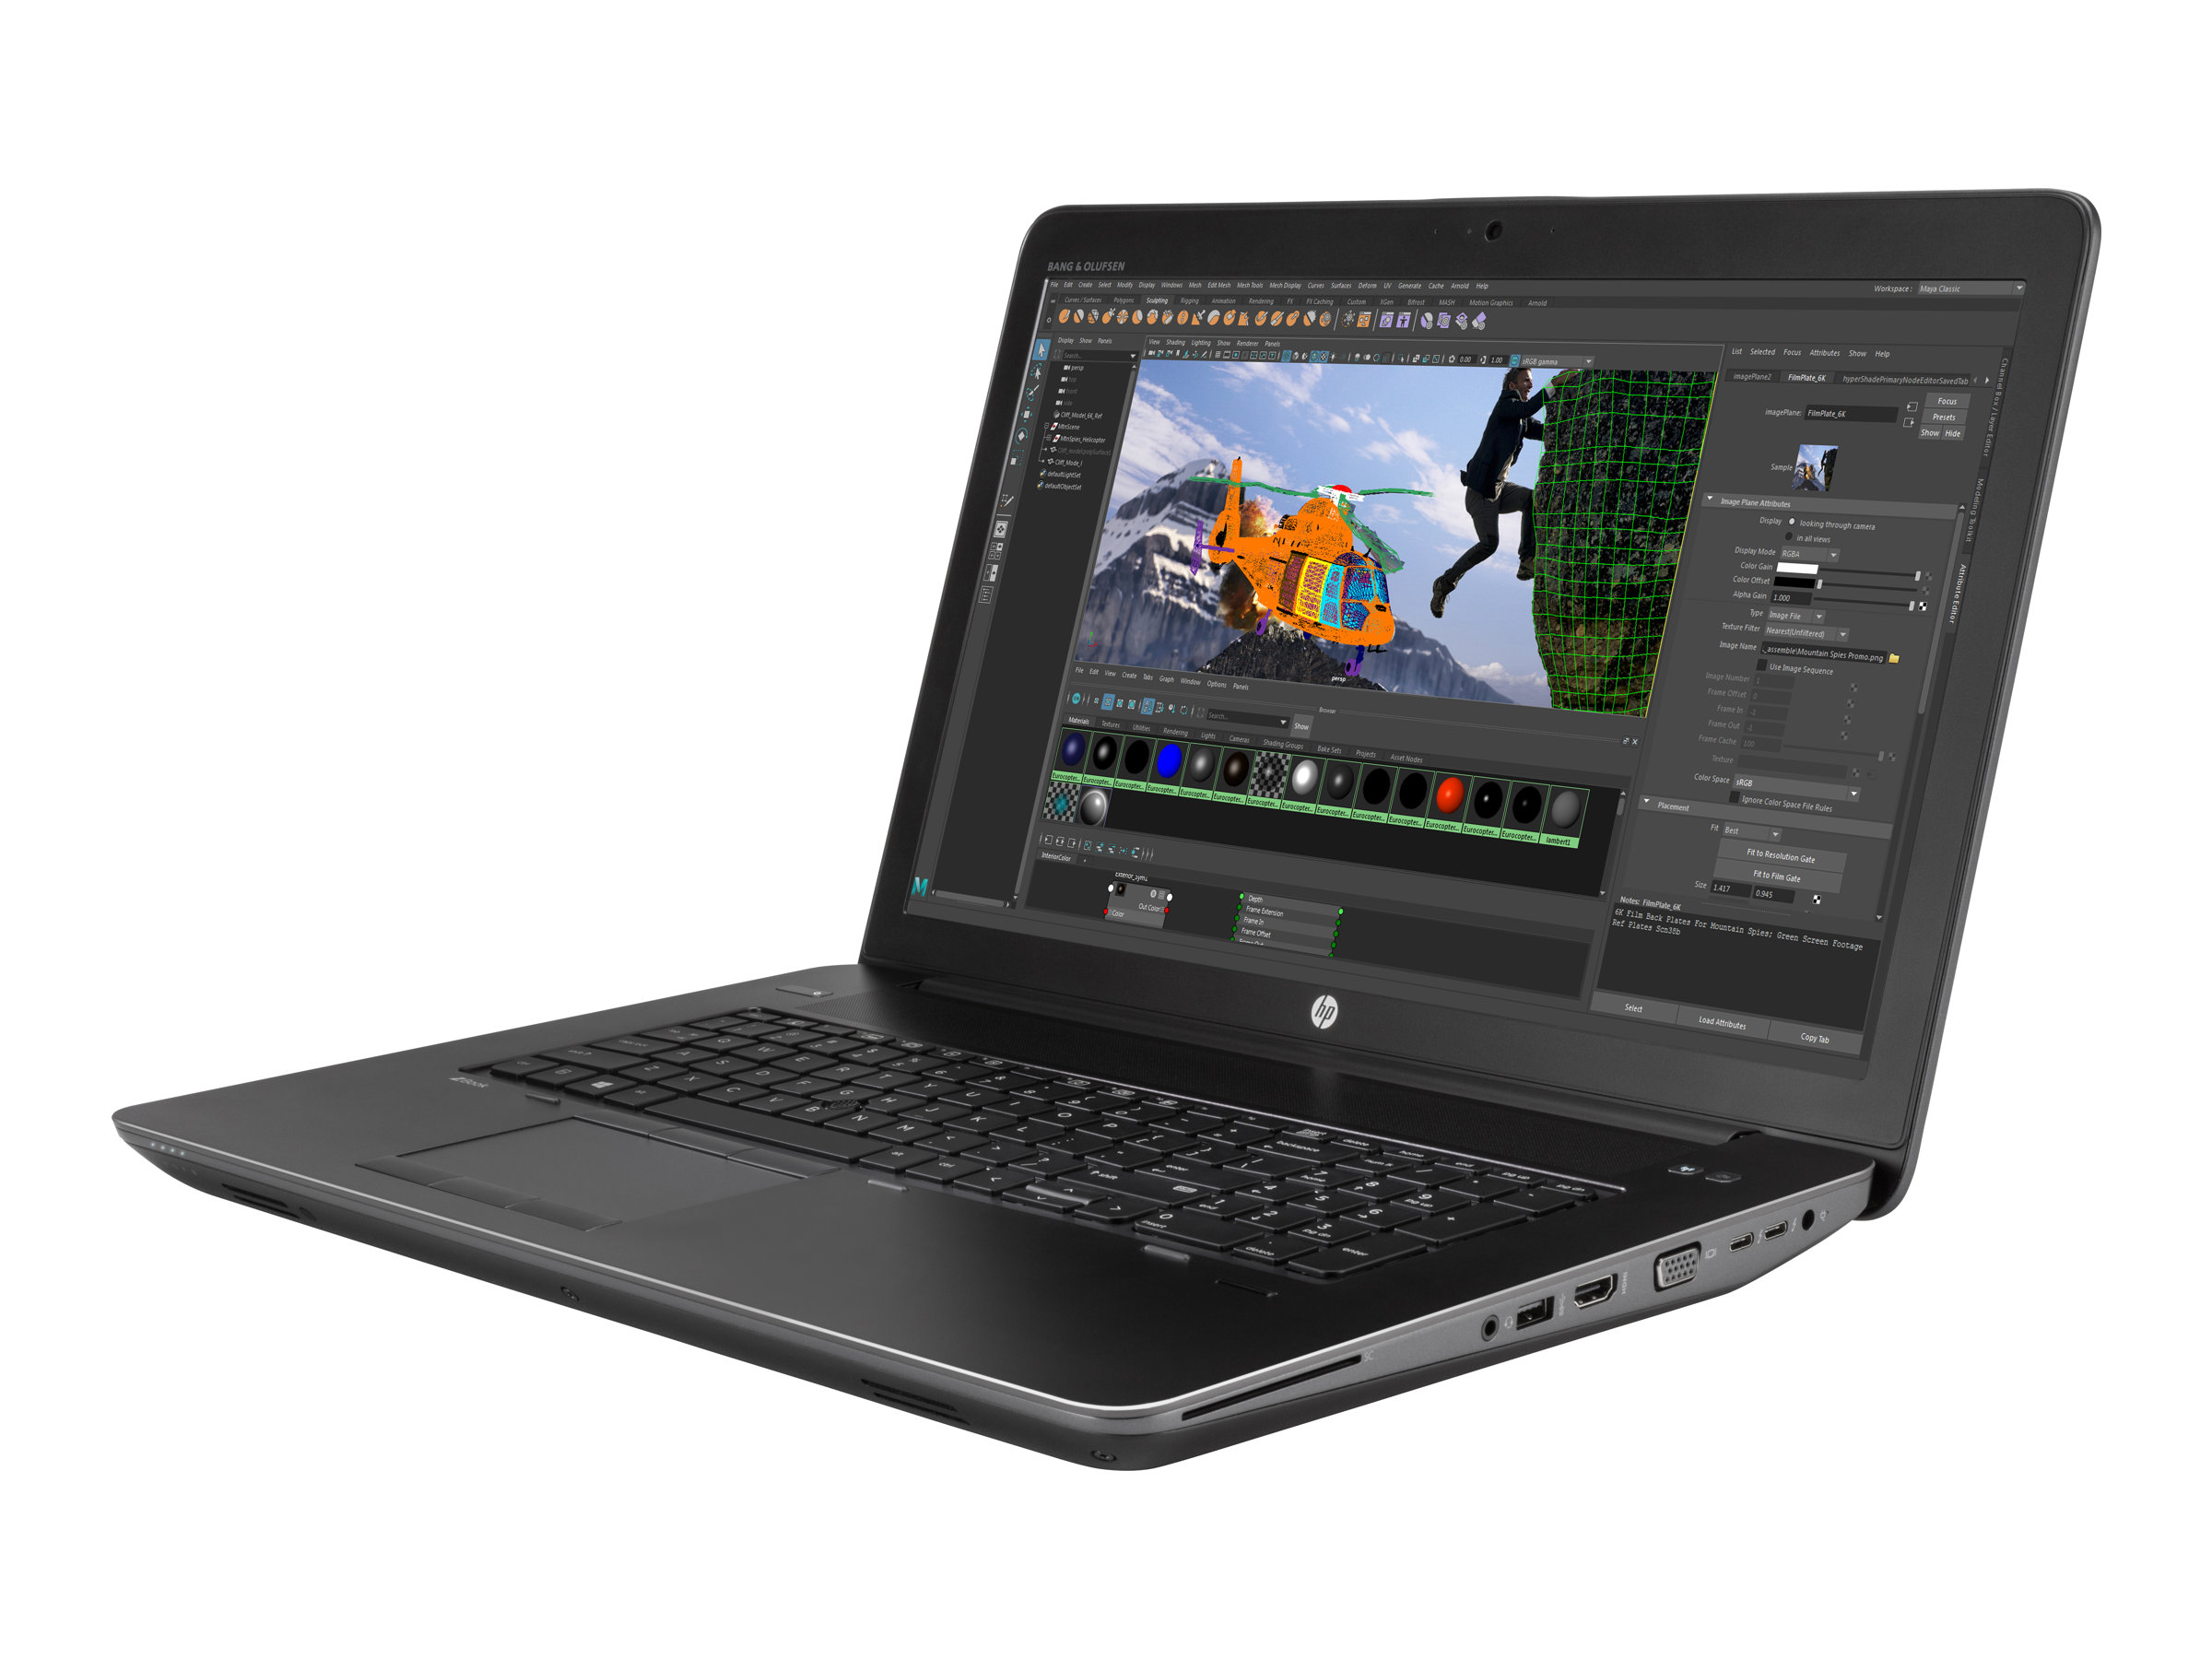 HP ZBook 17 G4 Mobile Workstation - Core i5 7440HQ / 2.8 GHz - Win 10 Pro 64-Bit - 8 GB RAM - 500 GB Hybridlaufwerk - 43.9 cm (17.3